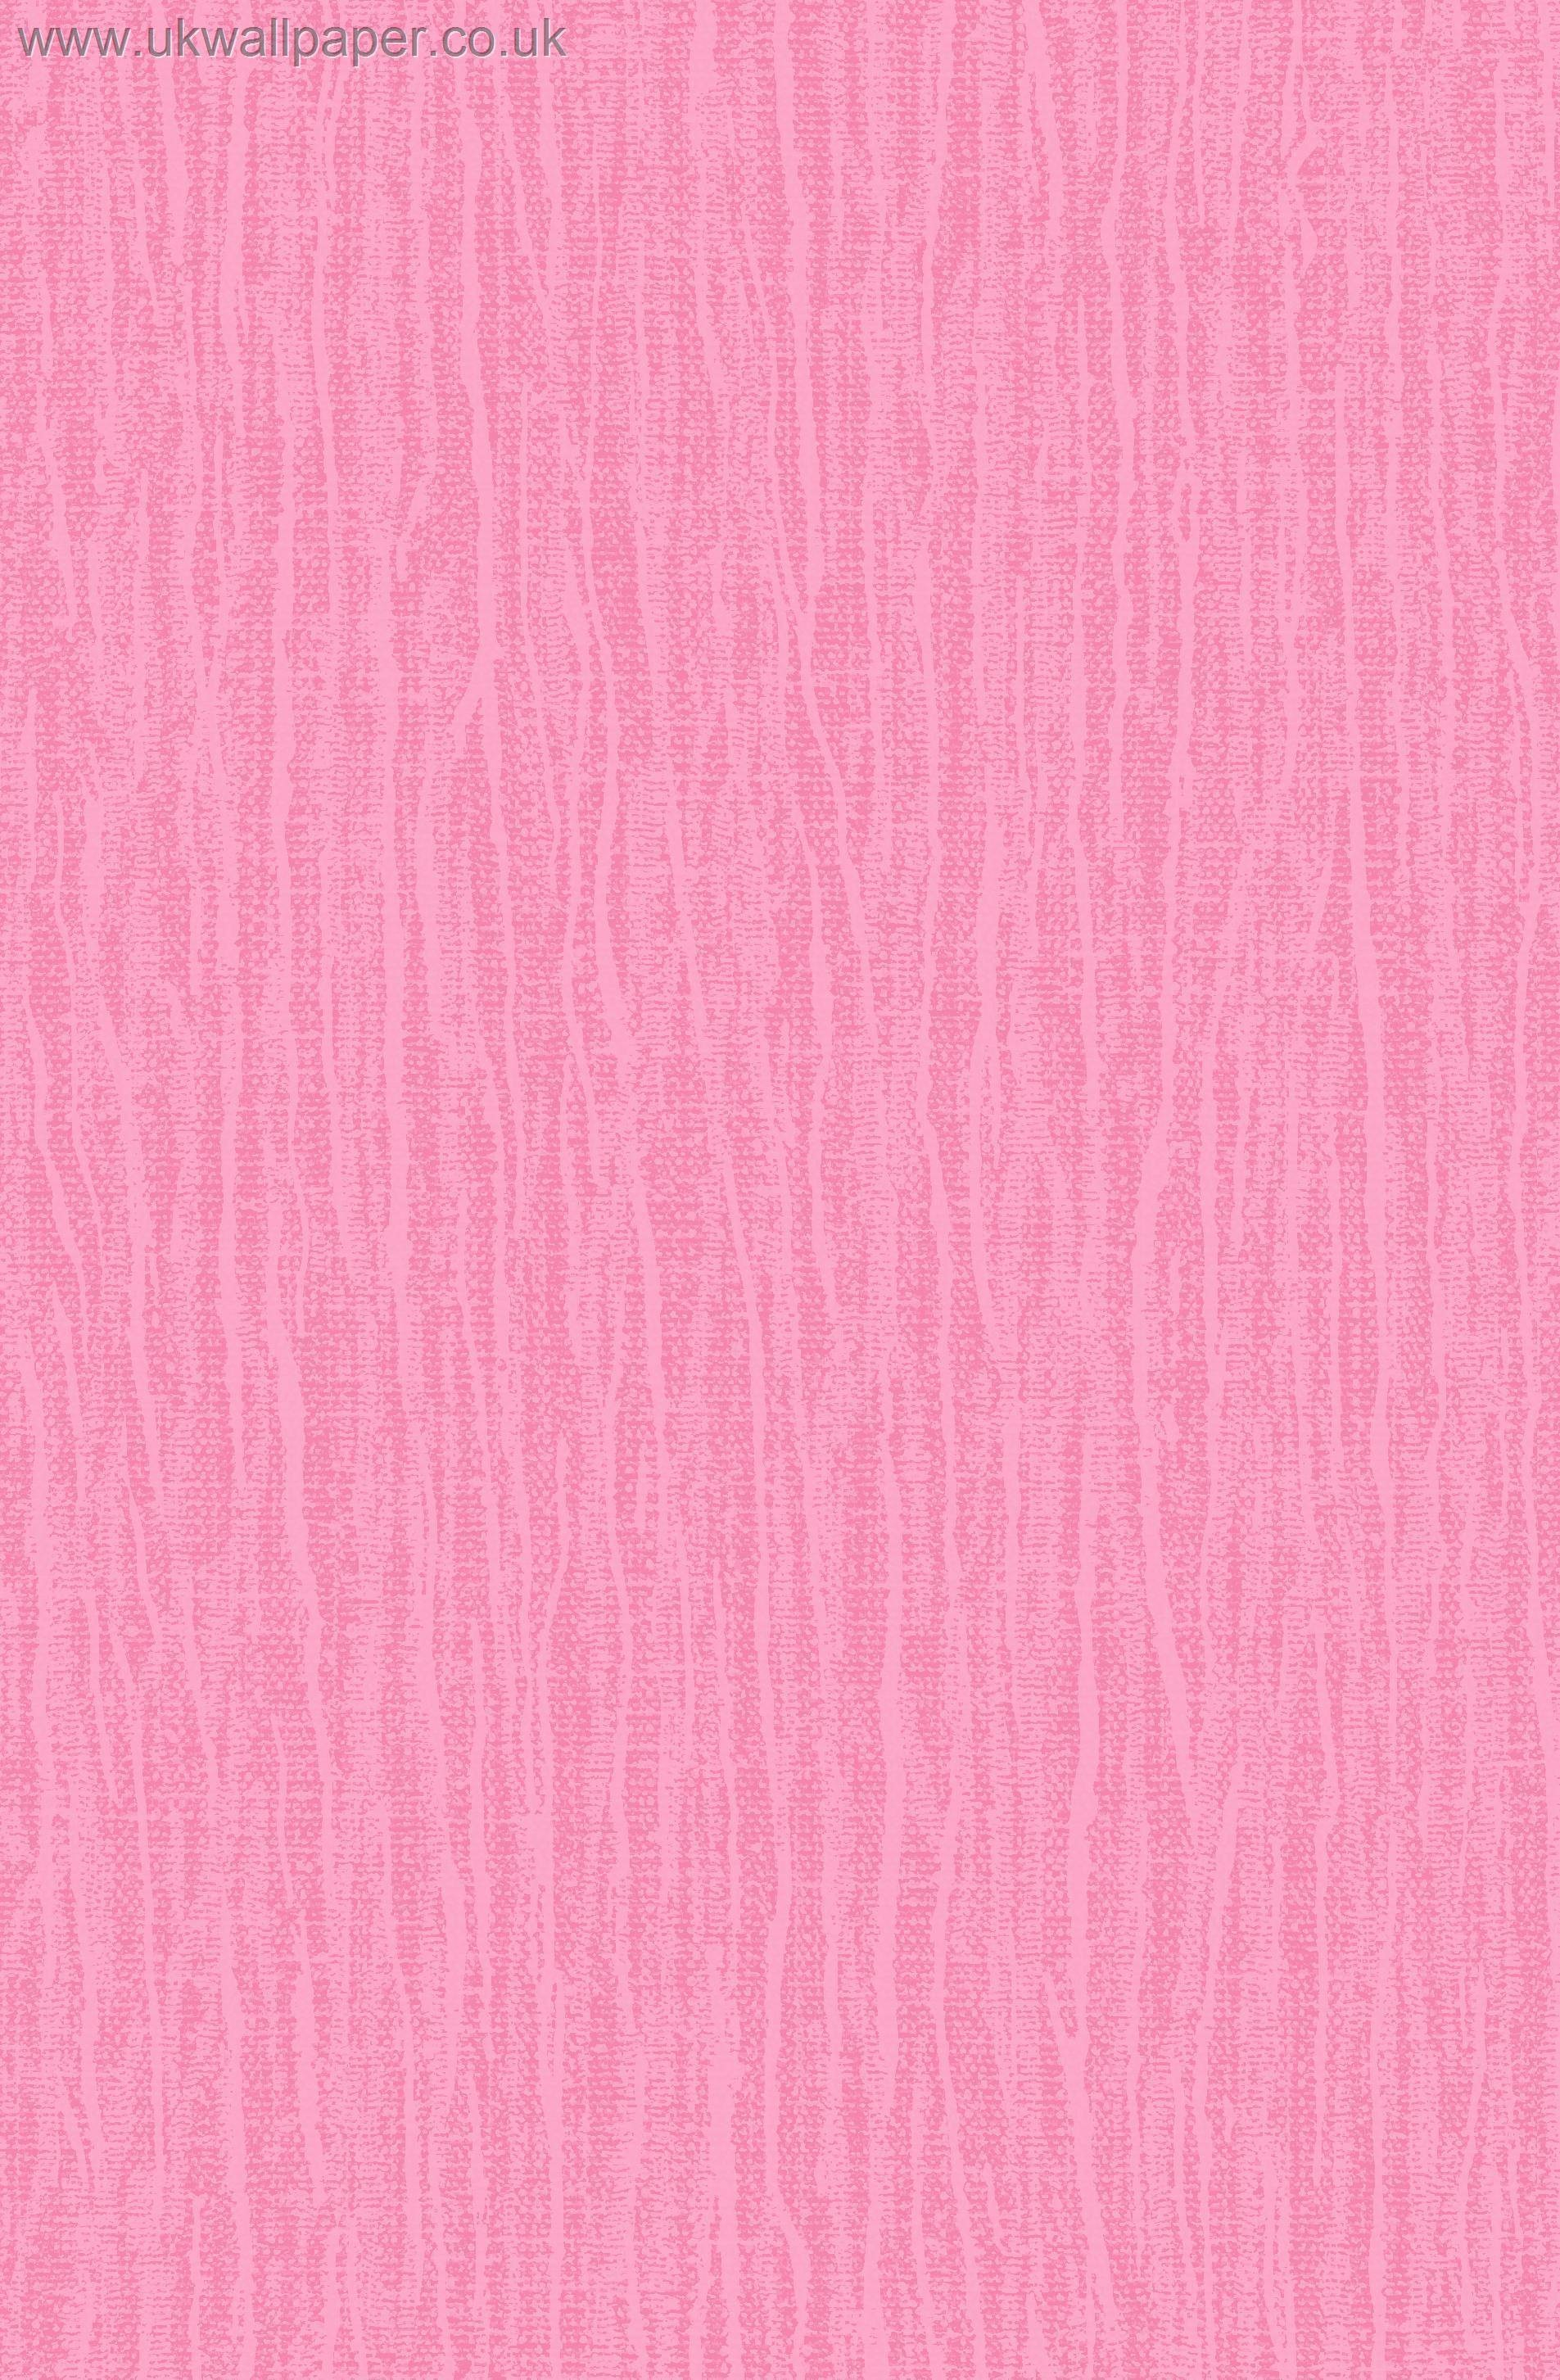 1920x1200 Pink Hd Abstract And Pigeon On Background Desktop 470662 Wallpaper